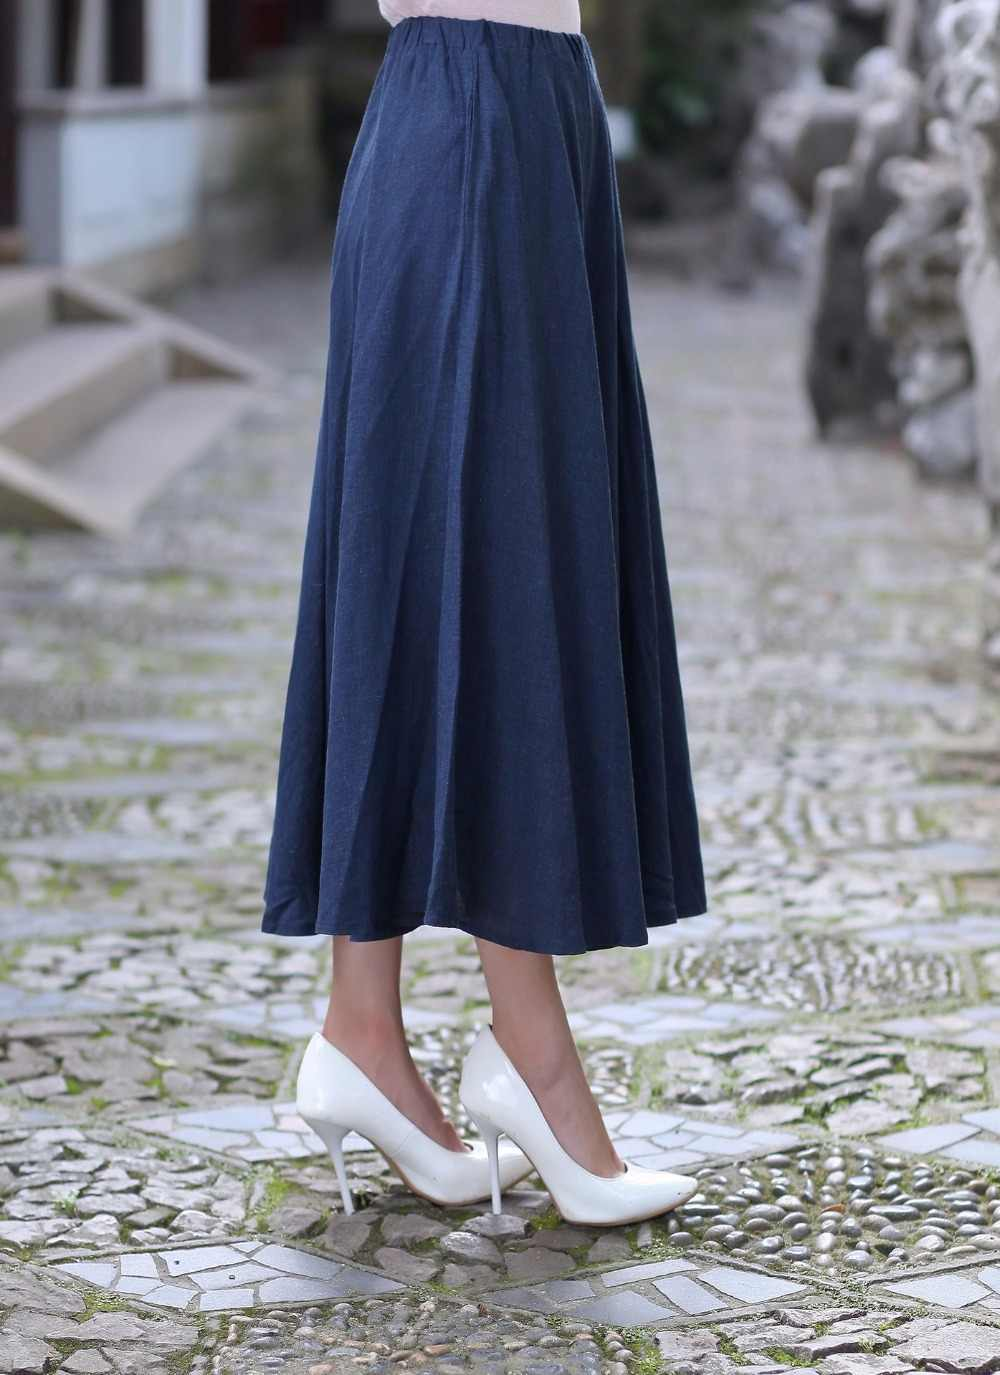 3fe56fd0f2 ... Women Summer Casual Cotton Linen Long Skirt Ladies' Pleated Skirt  Vintage Navy Blue Flared Skirts ...